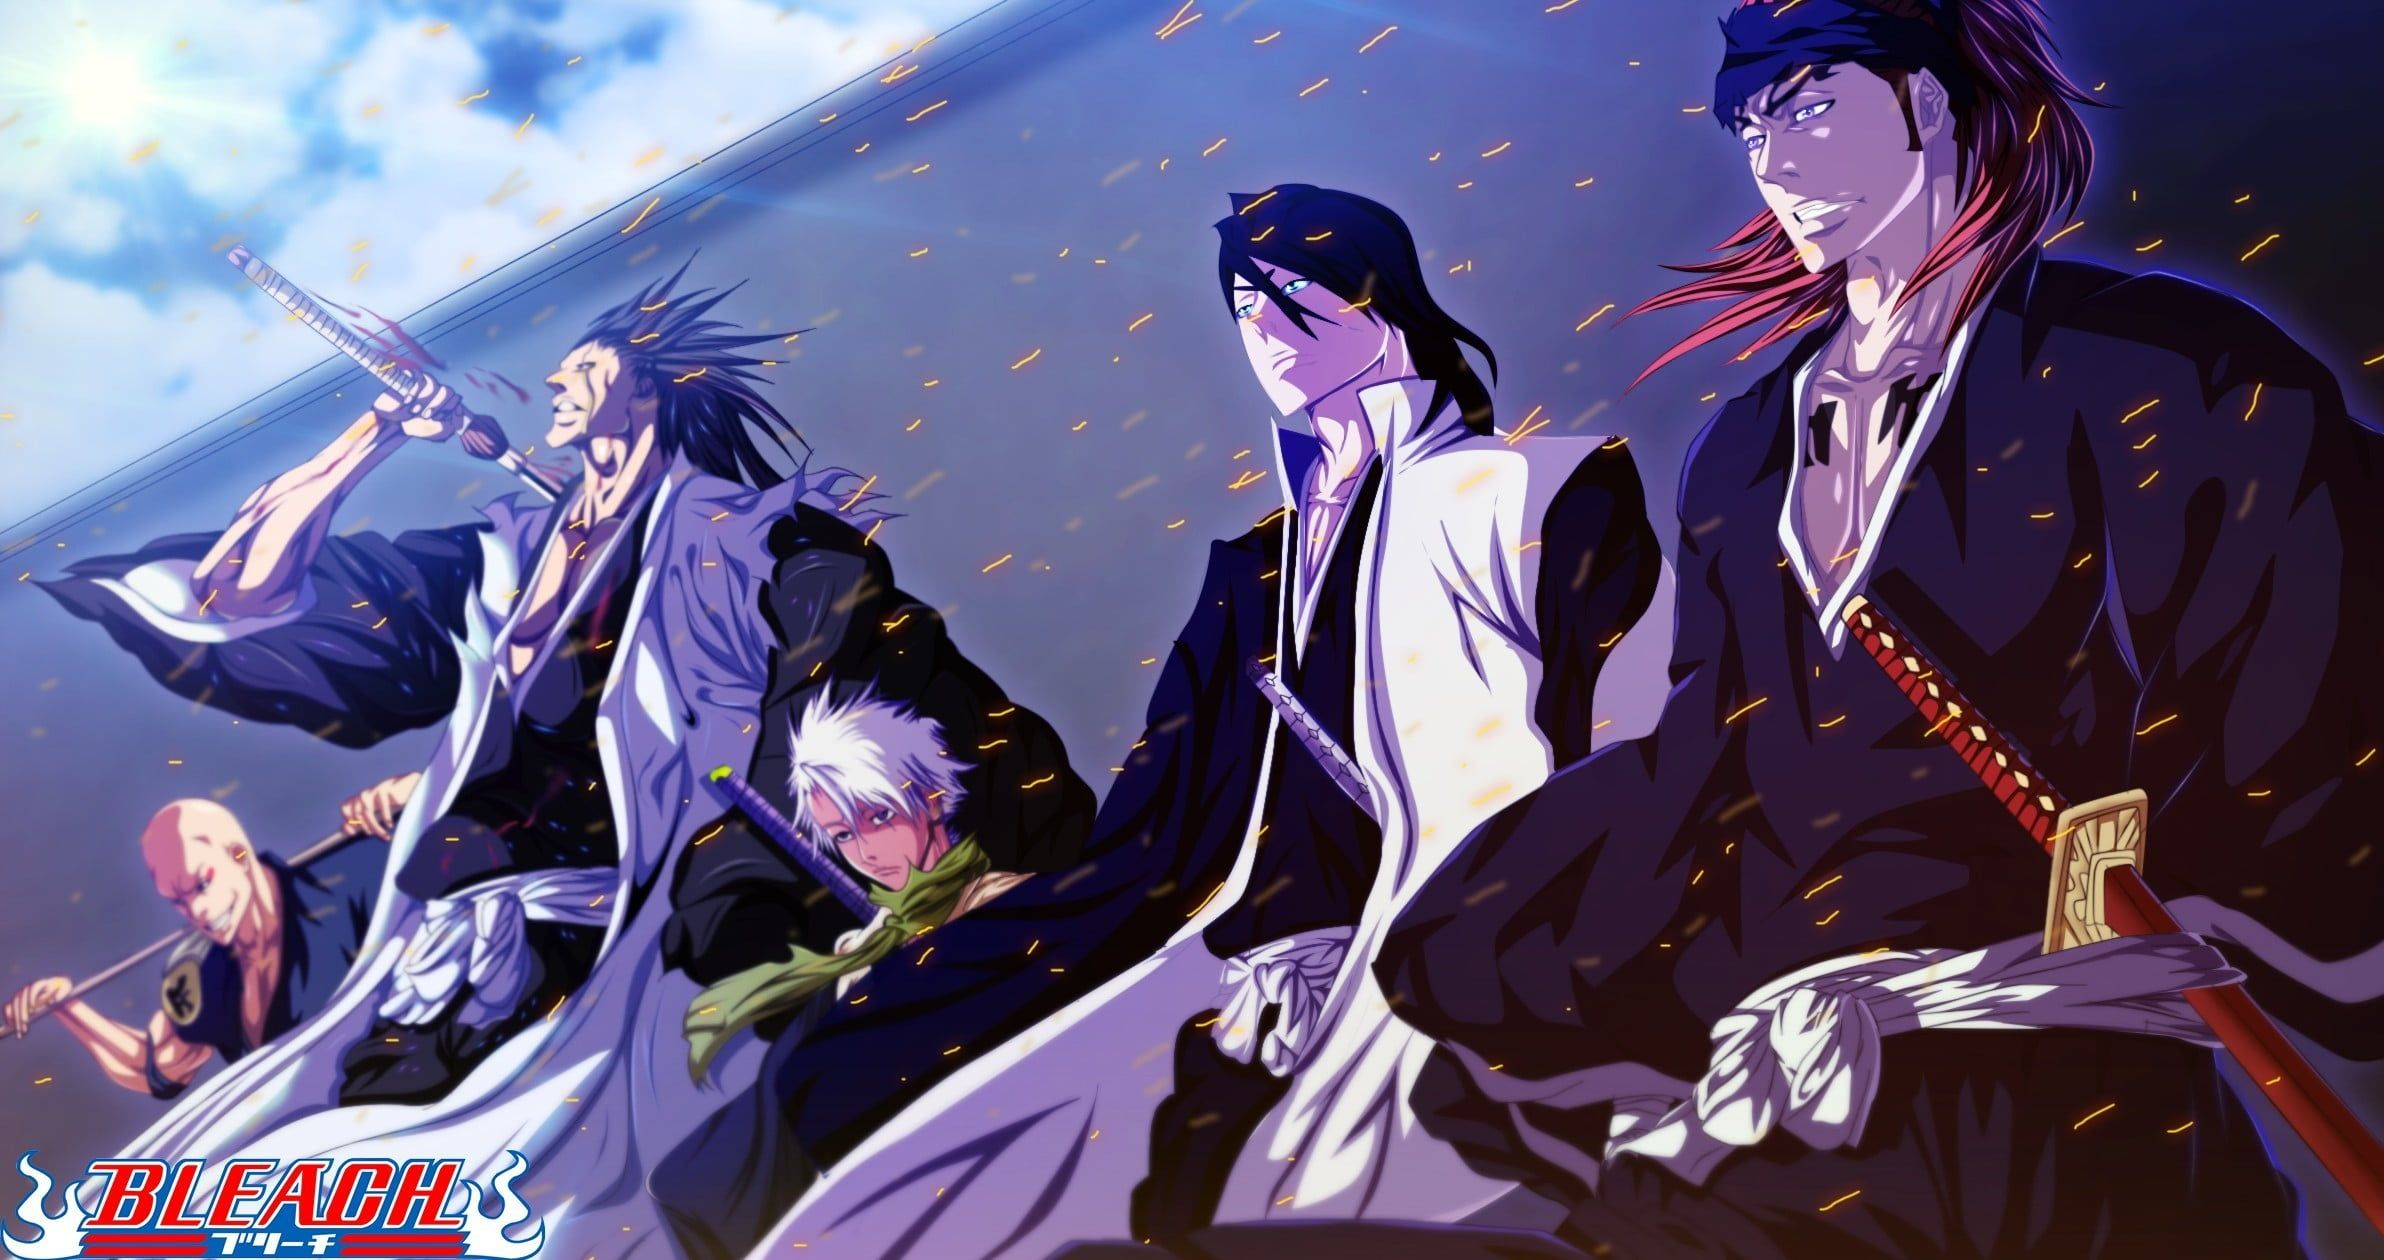 Bleach Characters Digital Wallpaper Bleach Zaraki Kenpachi Kuchiki Byakuya Abarai Renji Ikk In 2020 Character Wallpaper Bleach Characters Anime Backgrounds Wallpapers